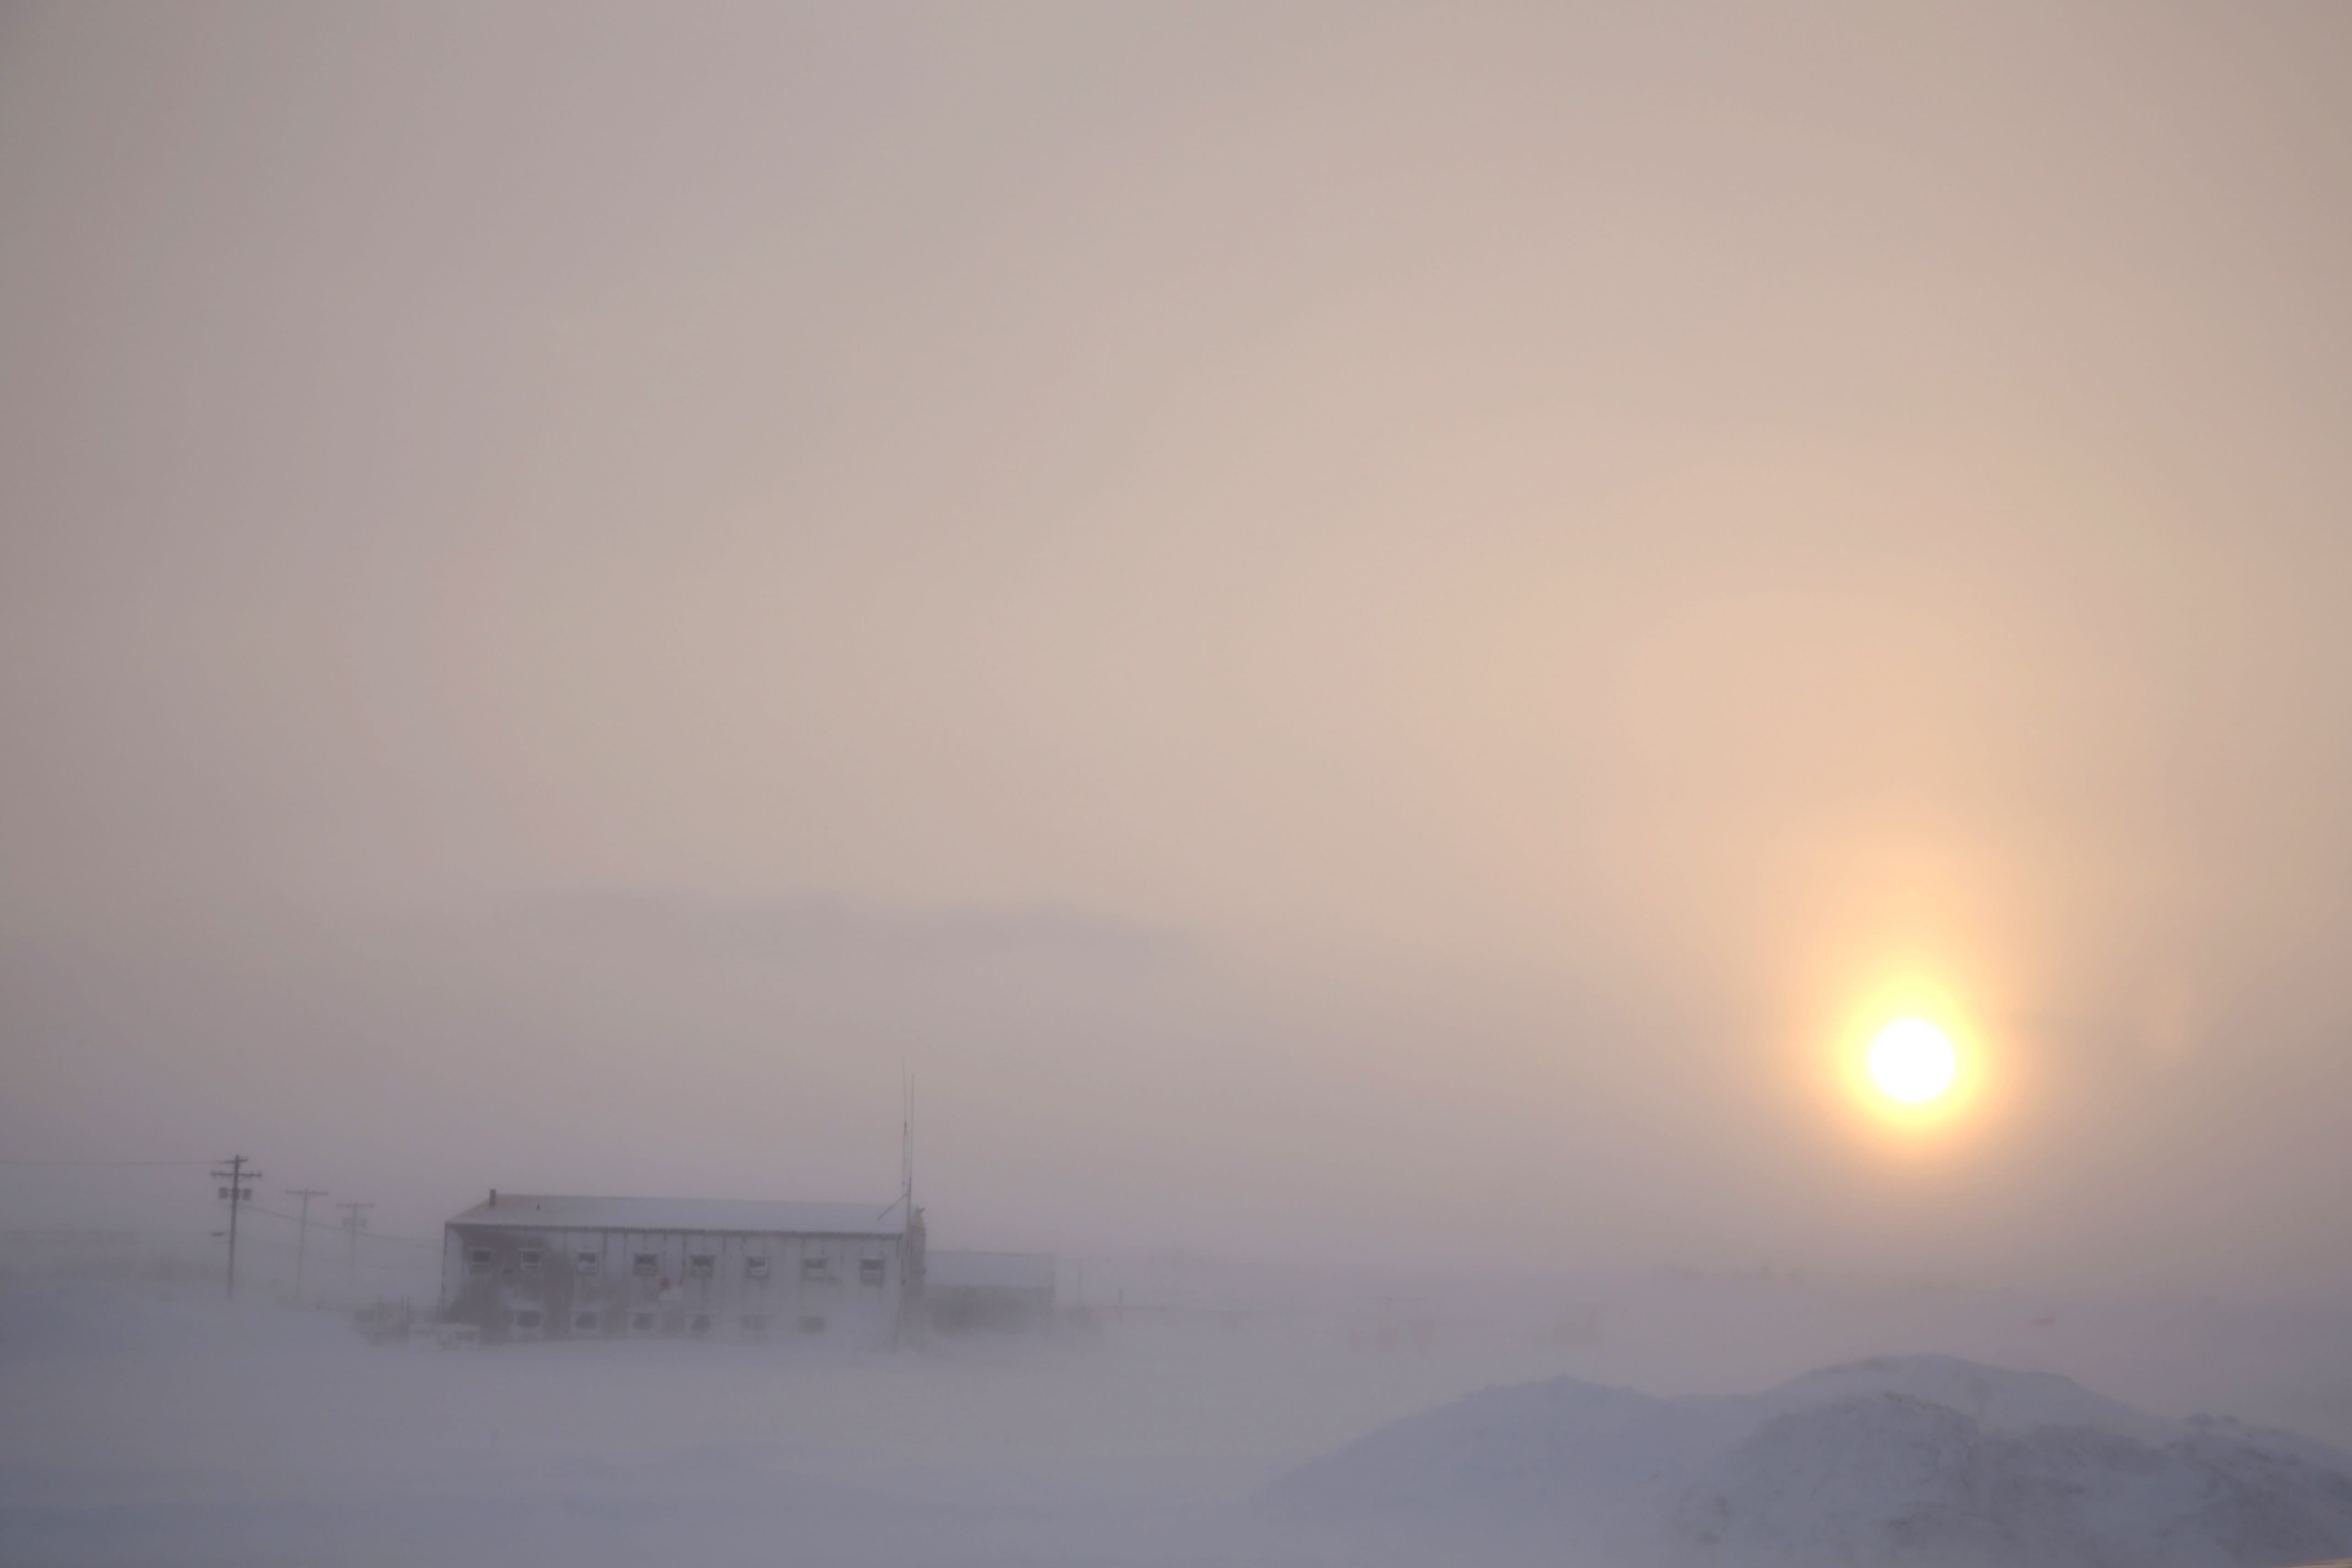 In this Feb. 13, 2019, photo, the afternoon sun hangs low as it shines through the snow at the airport in Nome, Alaska. Survivors and advocates contend that Nome police pay less attention and investigate less aggressively when sexual assaults are reported by Alaska Native women. (AP Photo/Wong Maye-E)